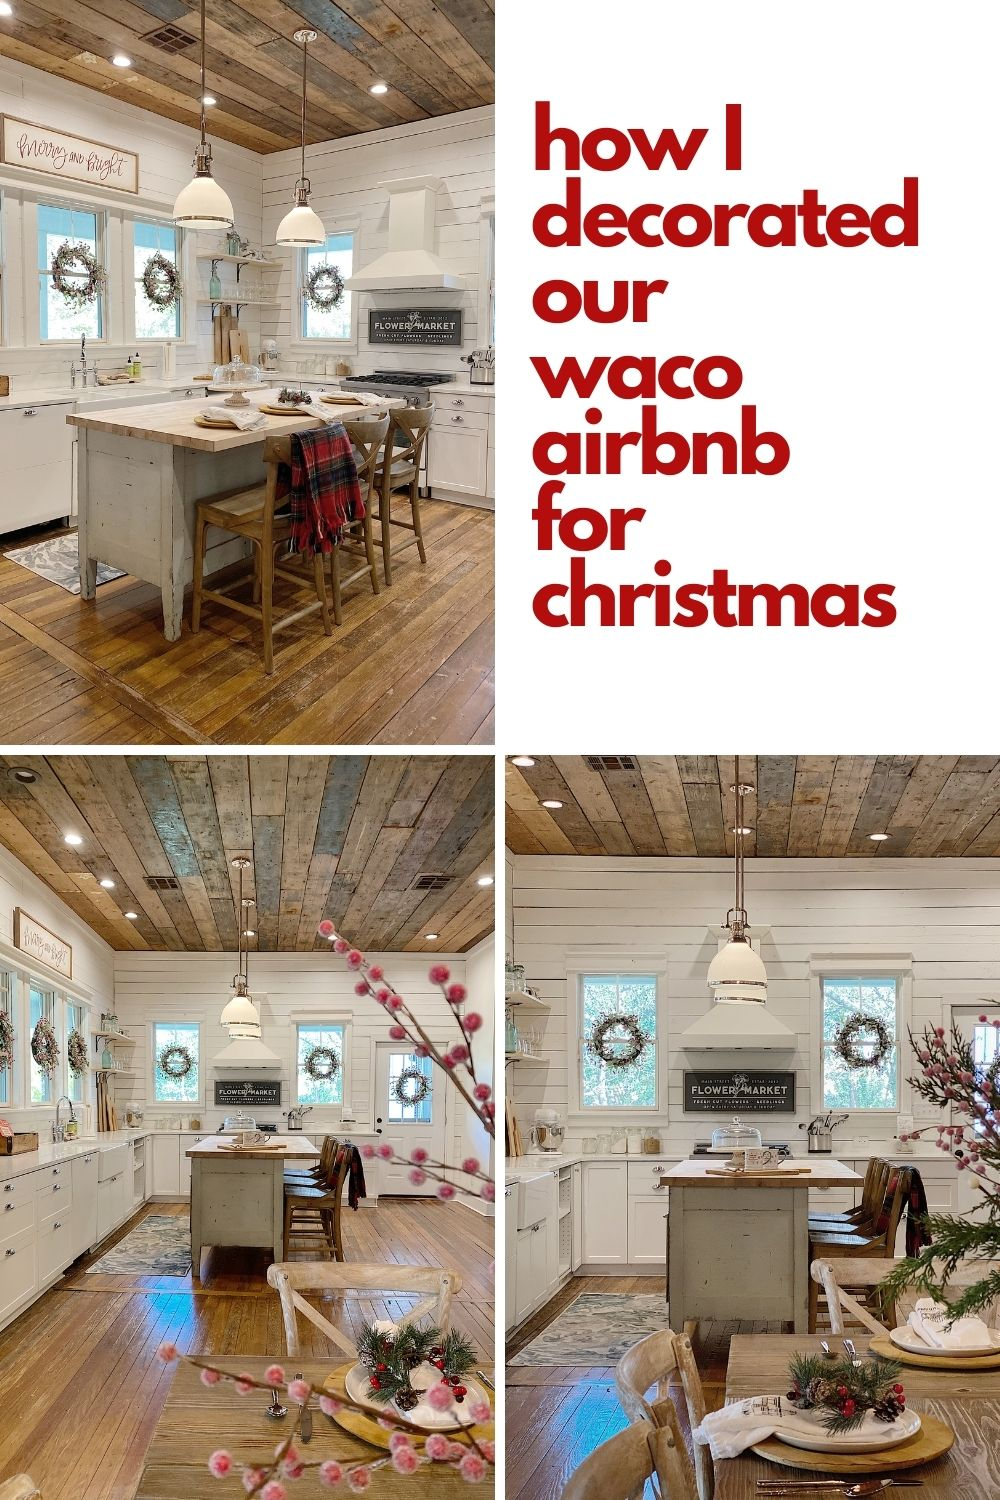 I am thrilled to share with you our plans for decorating the Waco kitchen for Christmas. It was a bit of a challenge but I love it.